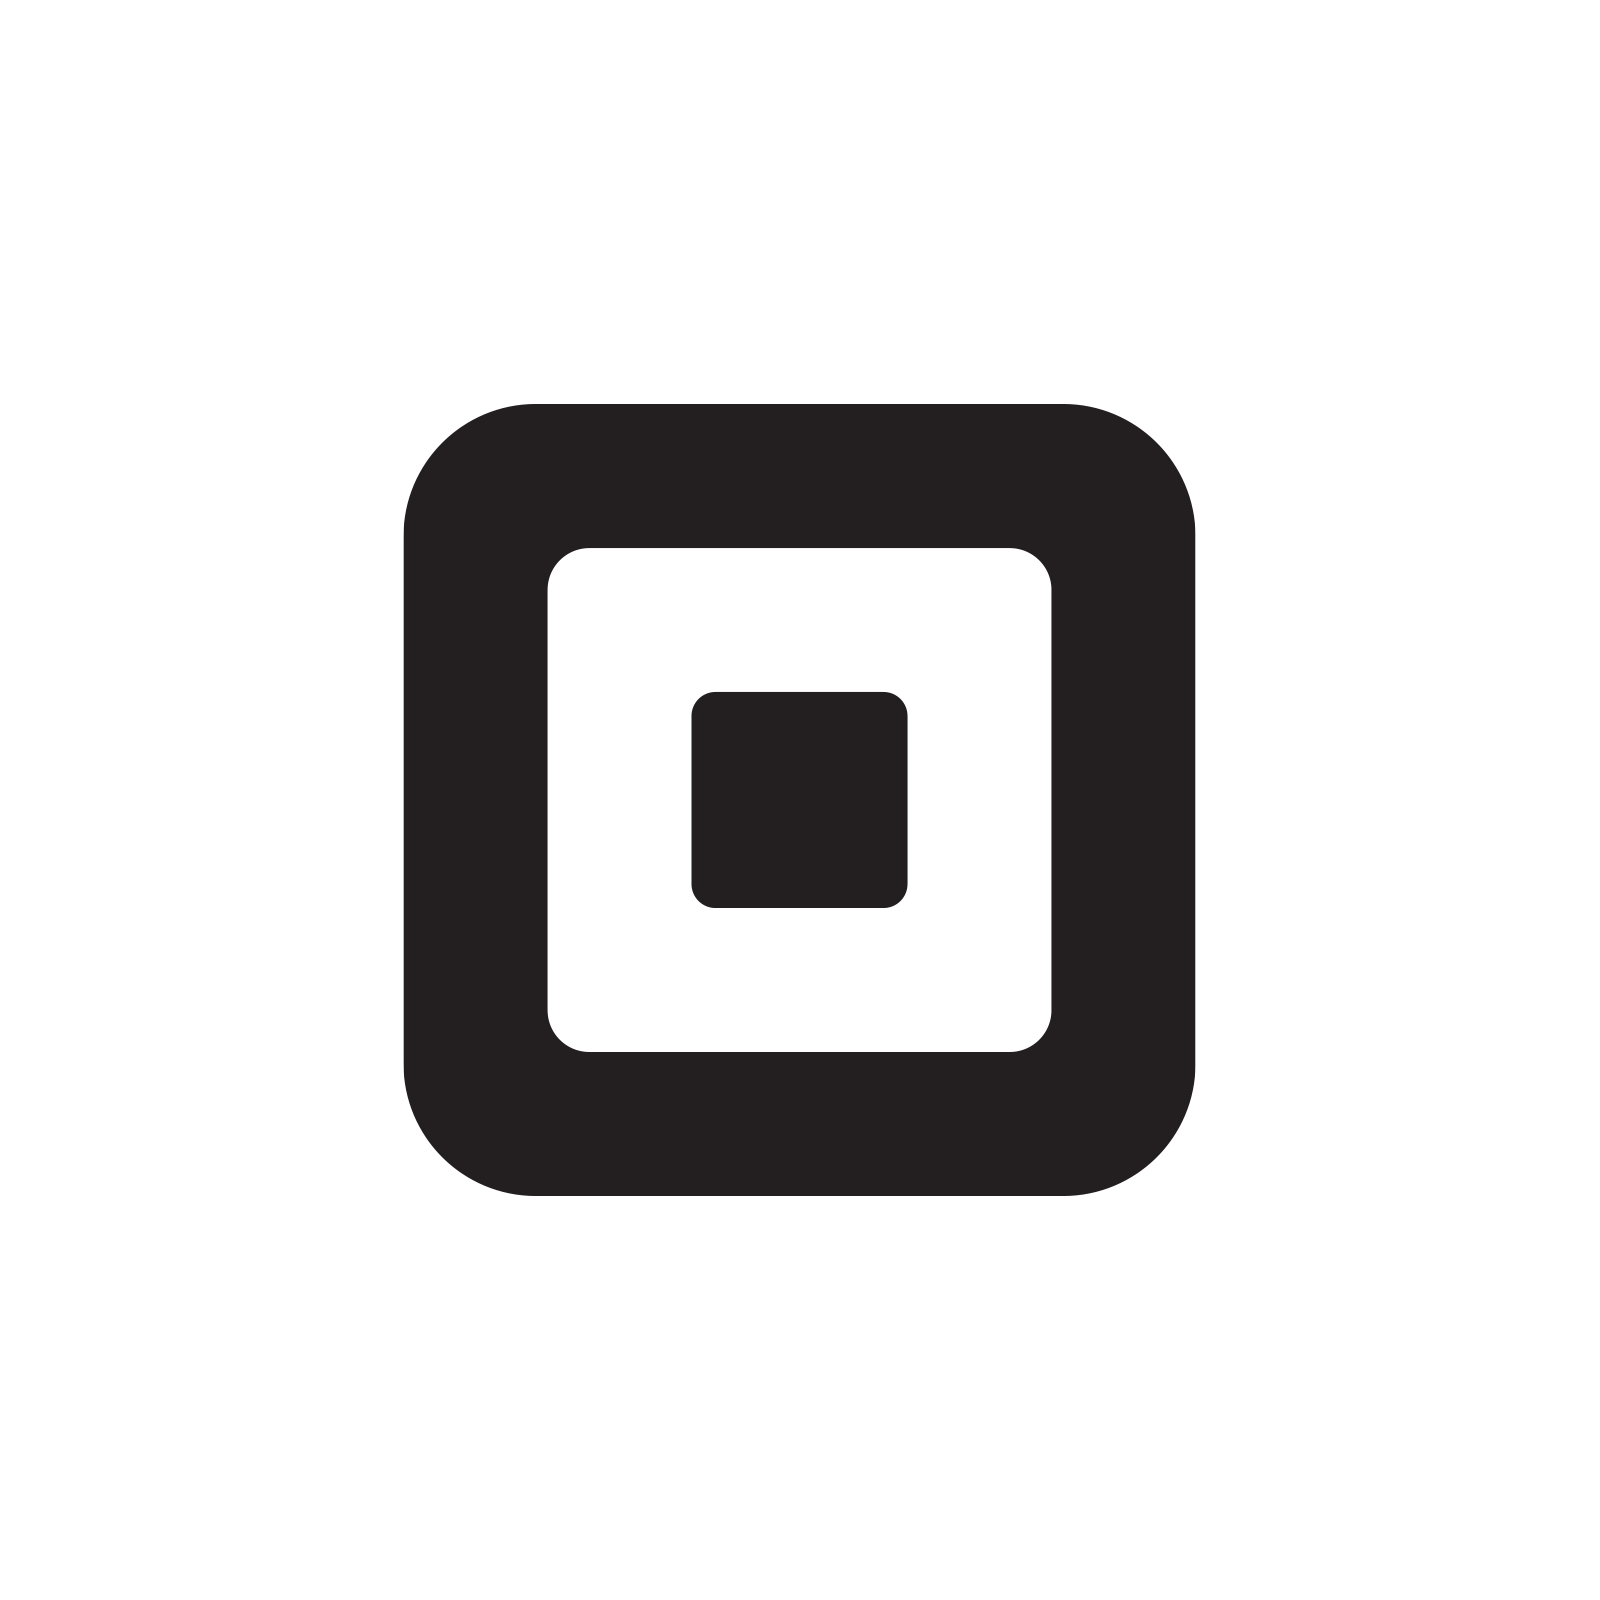 Square Logo Png, png collections at sccpre.cat.